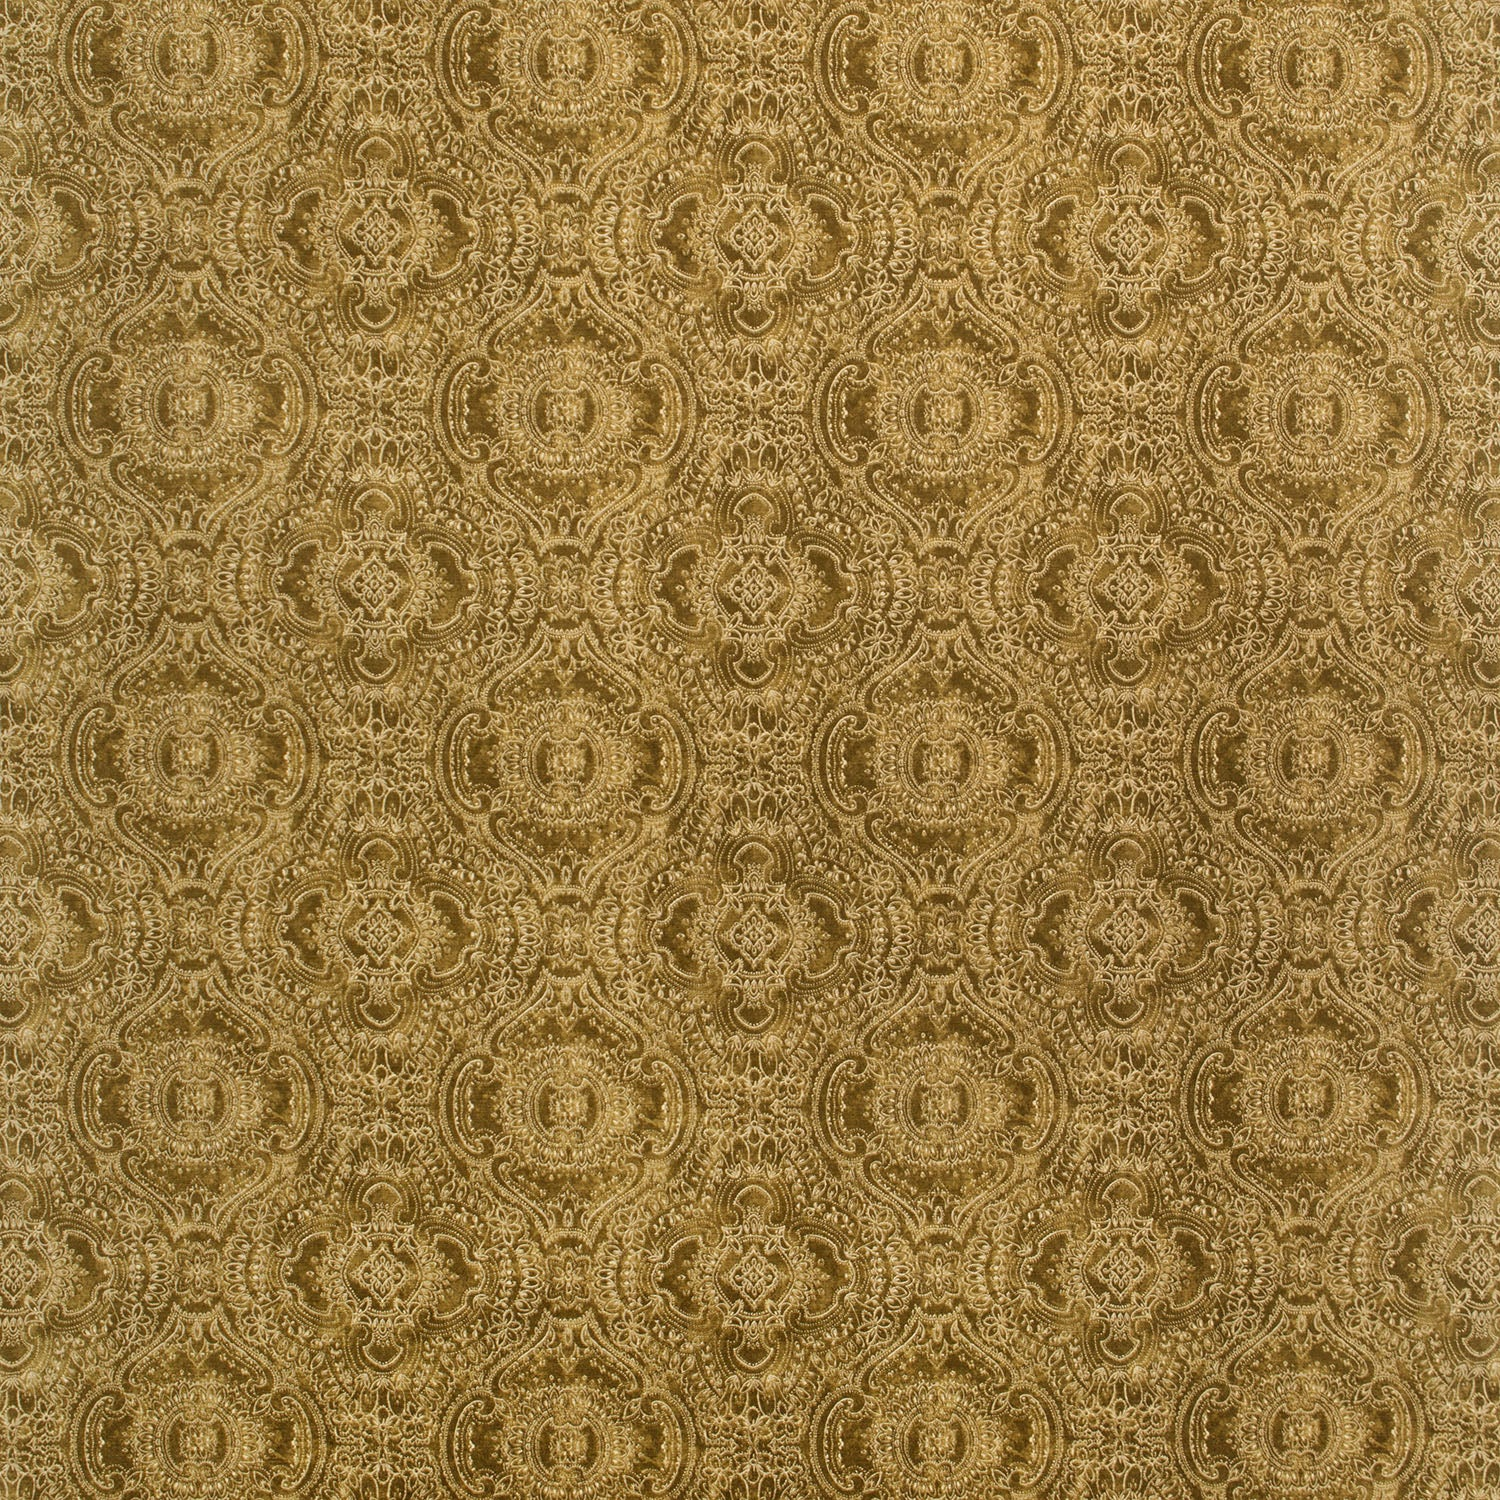 Fabric swatch of a gold velvet fabric for curtains and upholstery with intricate jewel like design